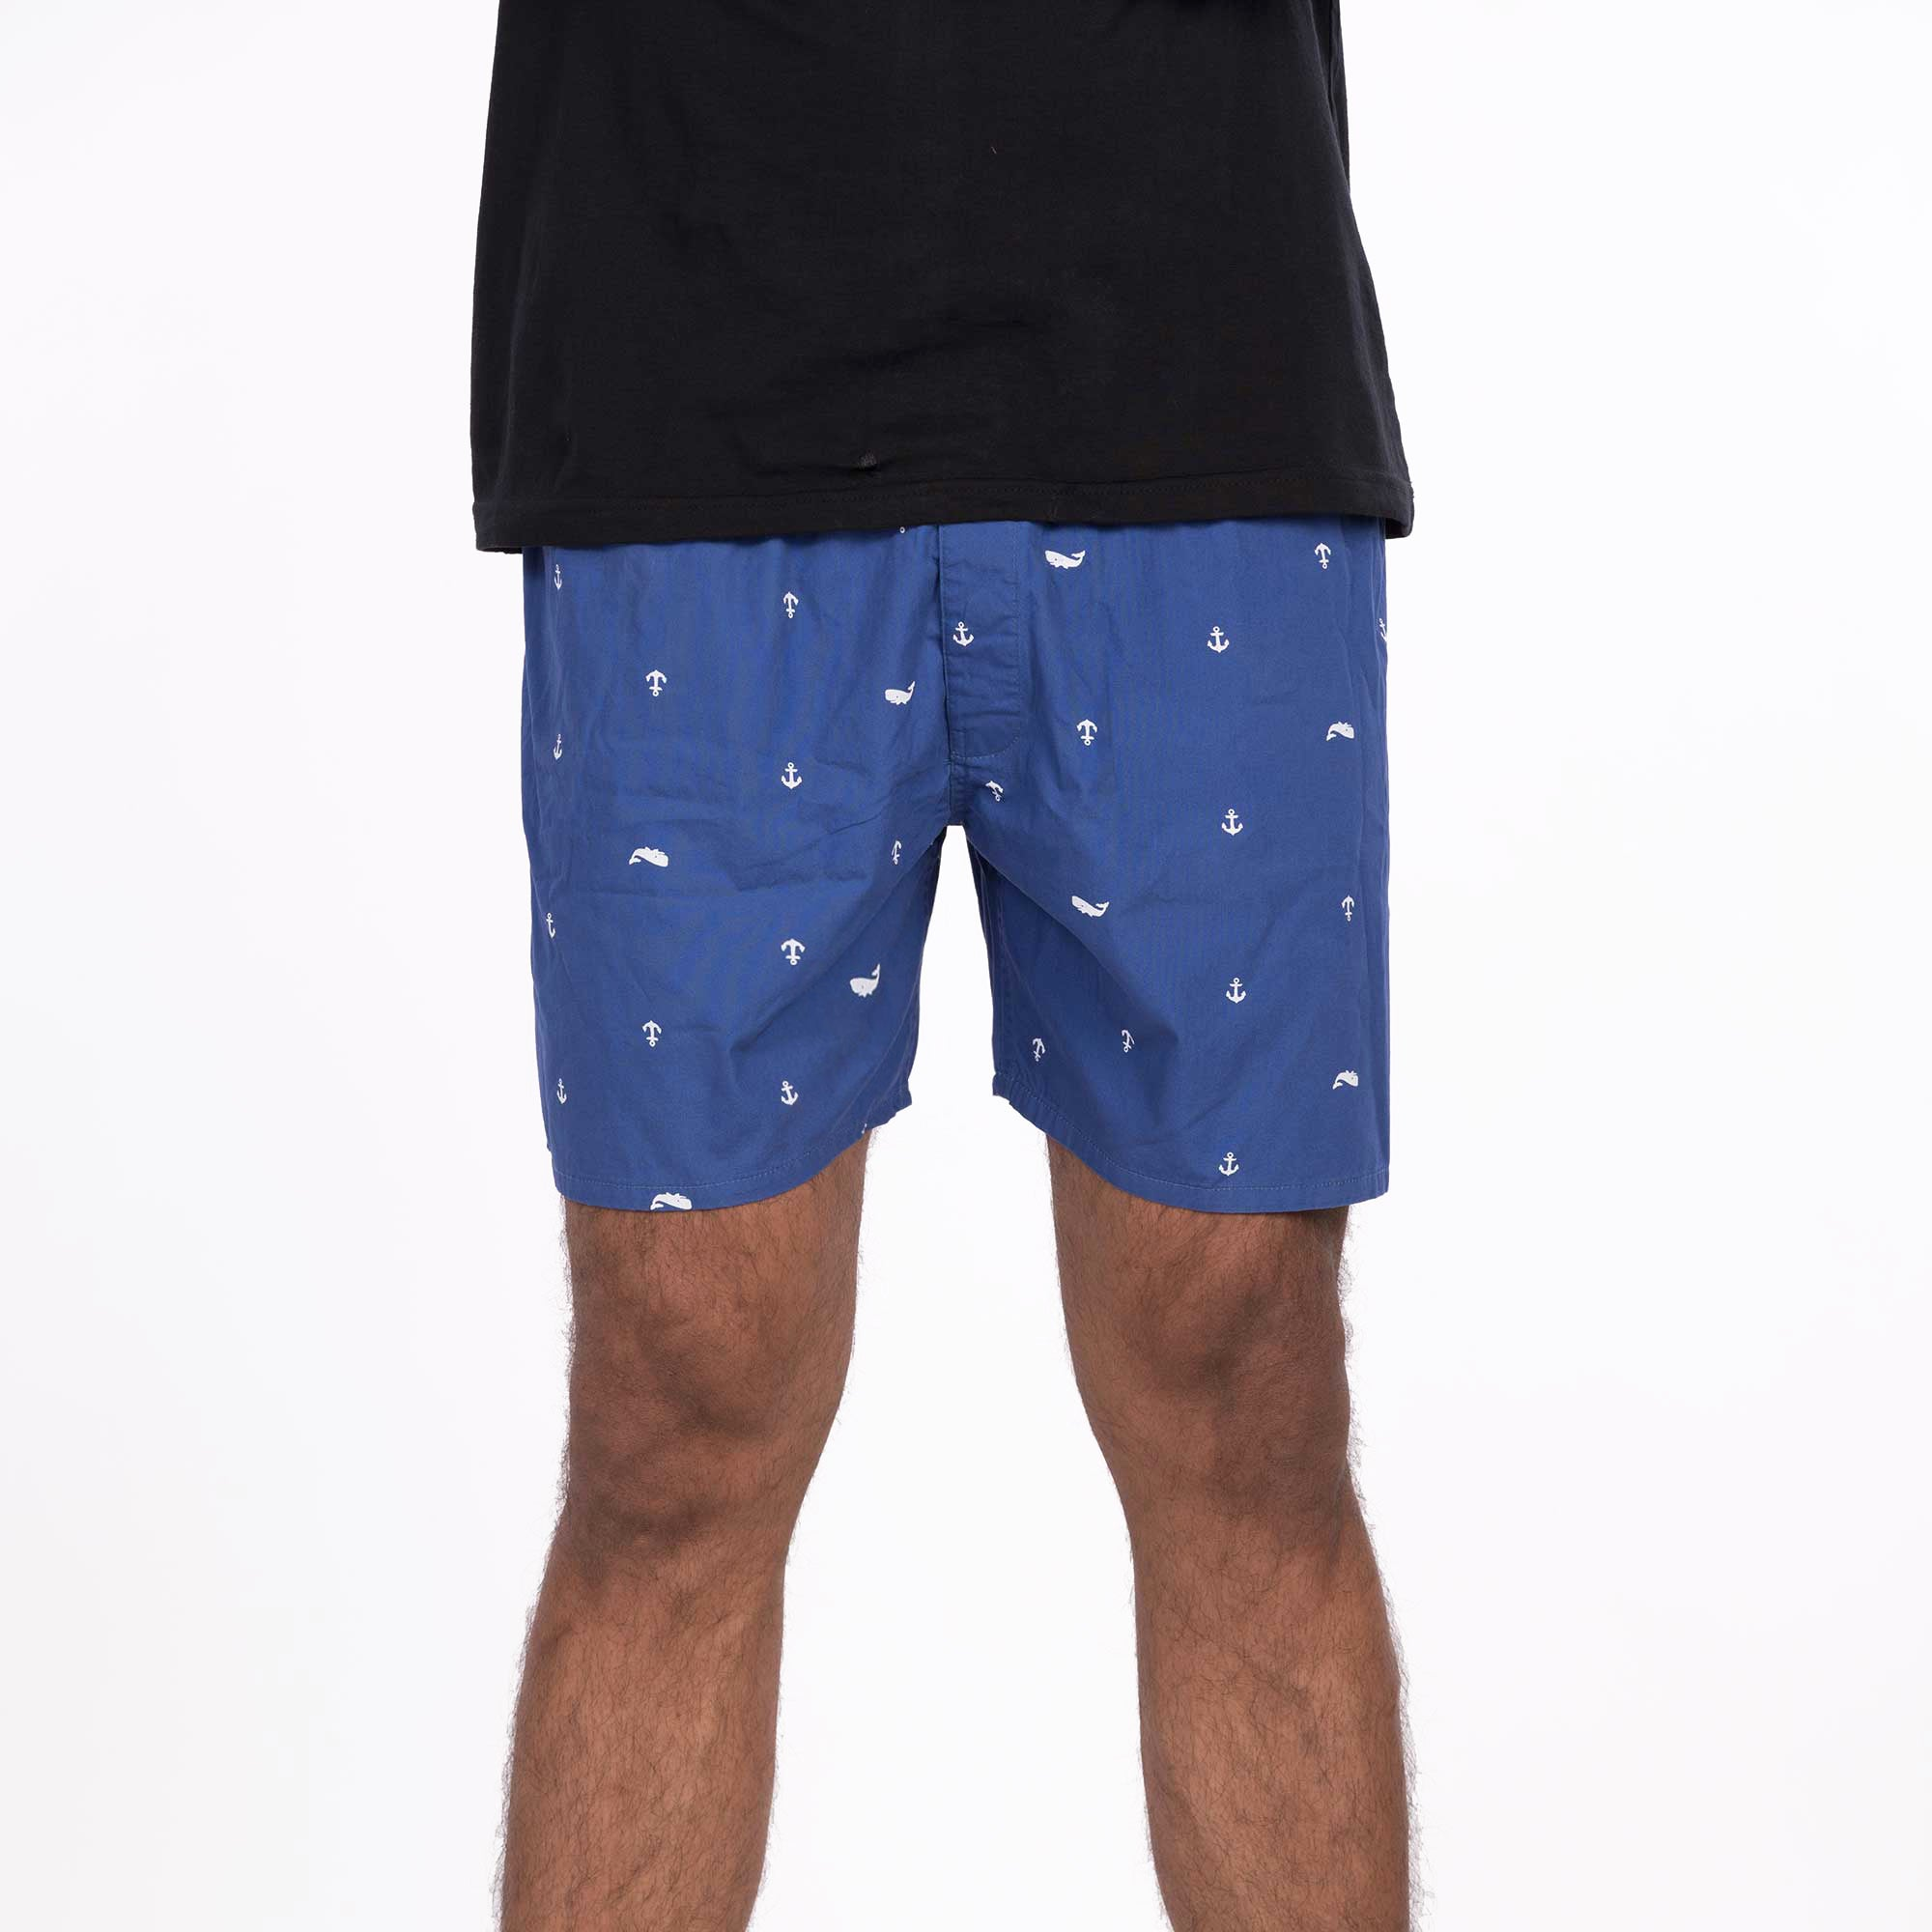 DMB01 Men's Boxer Shorts - Blue